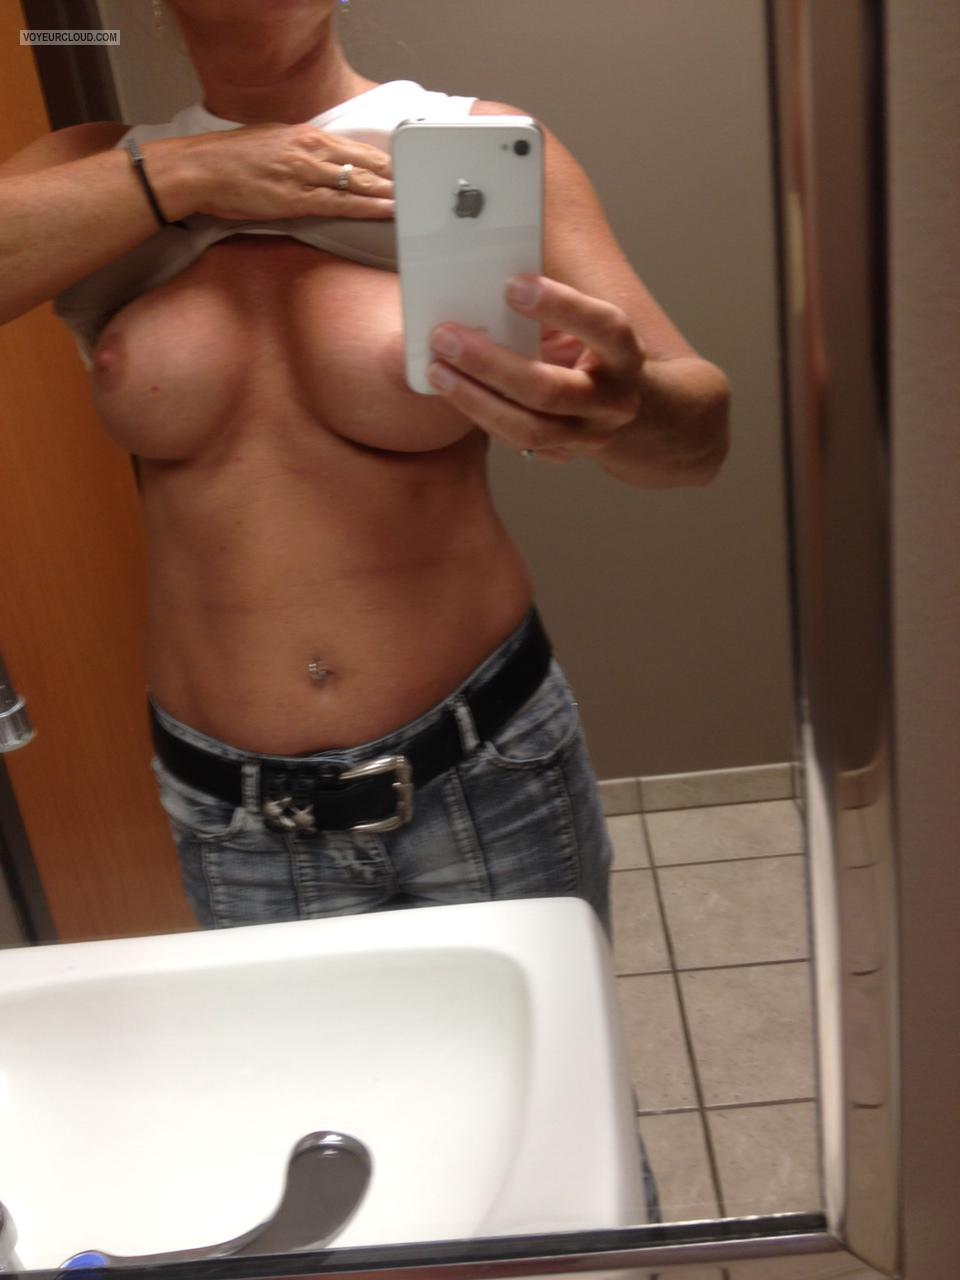 Medium Tits Of My Girlfriend DJ